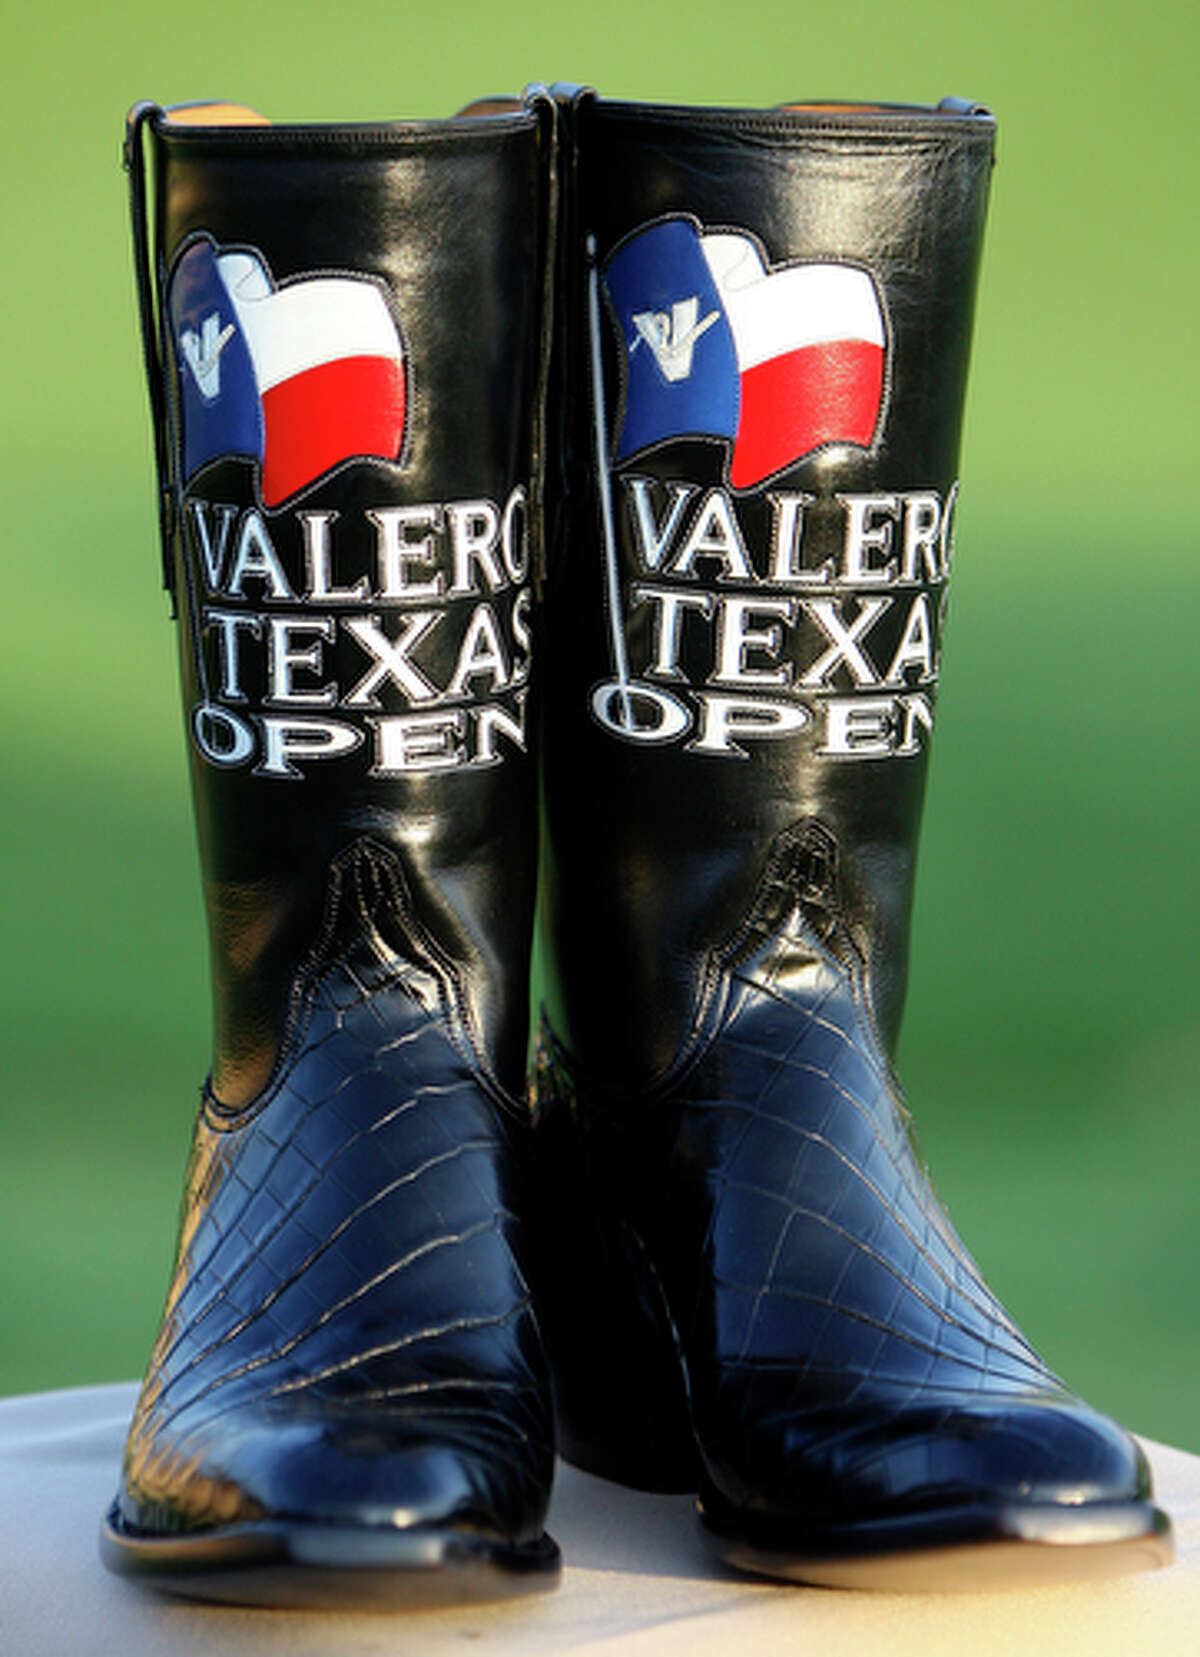 A pair of boots presented to Adam Scott, from Queensland, Australia, for winning the Valero Texas Open.